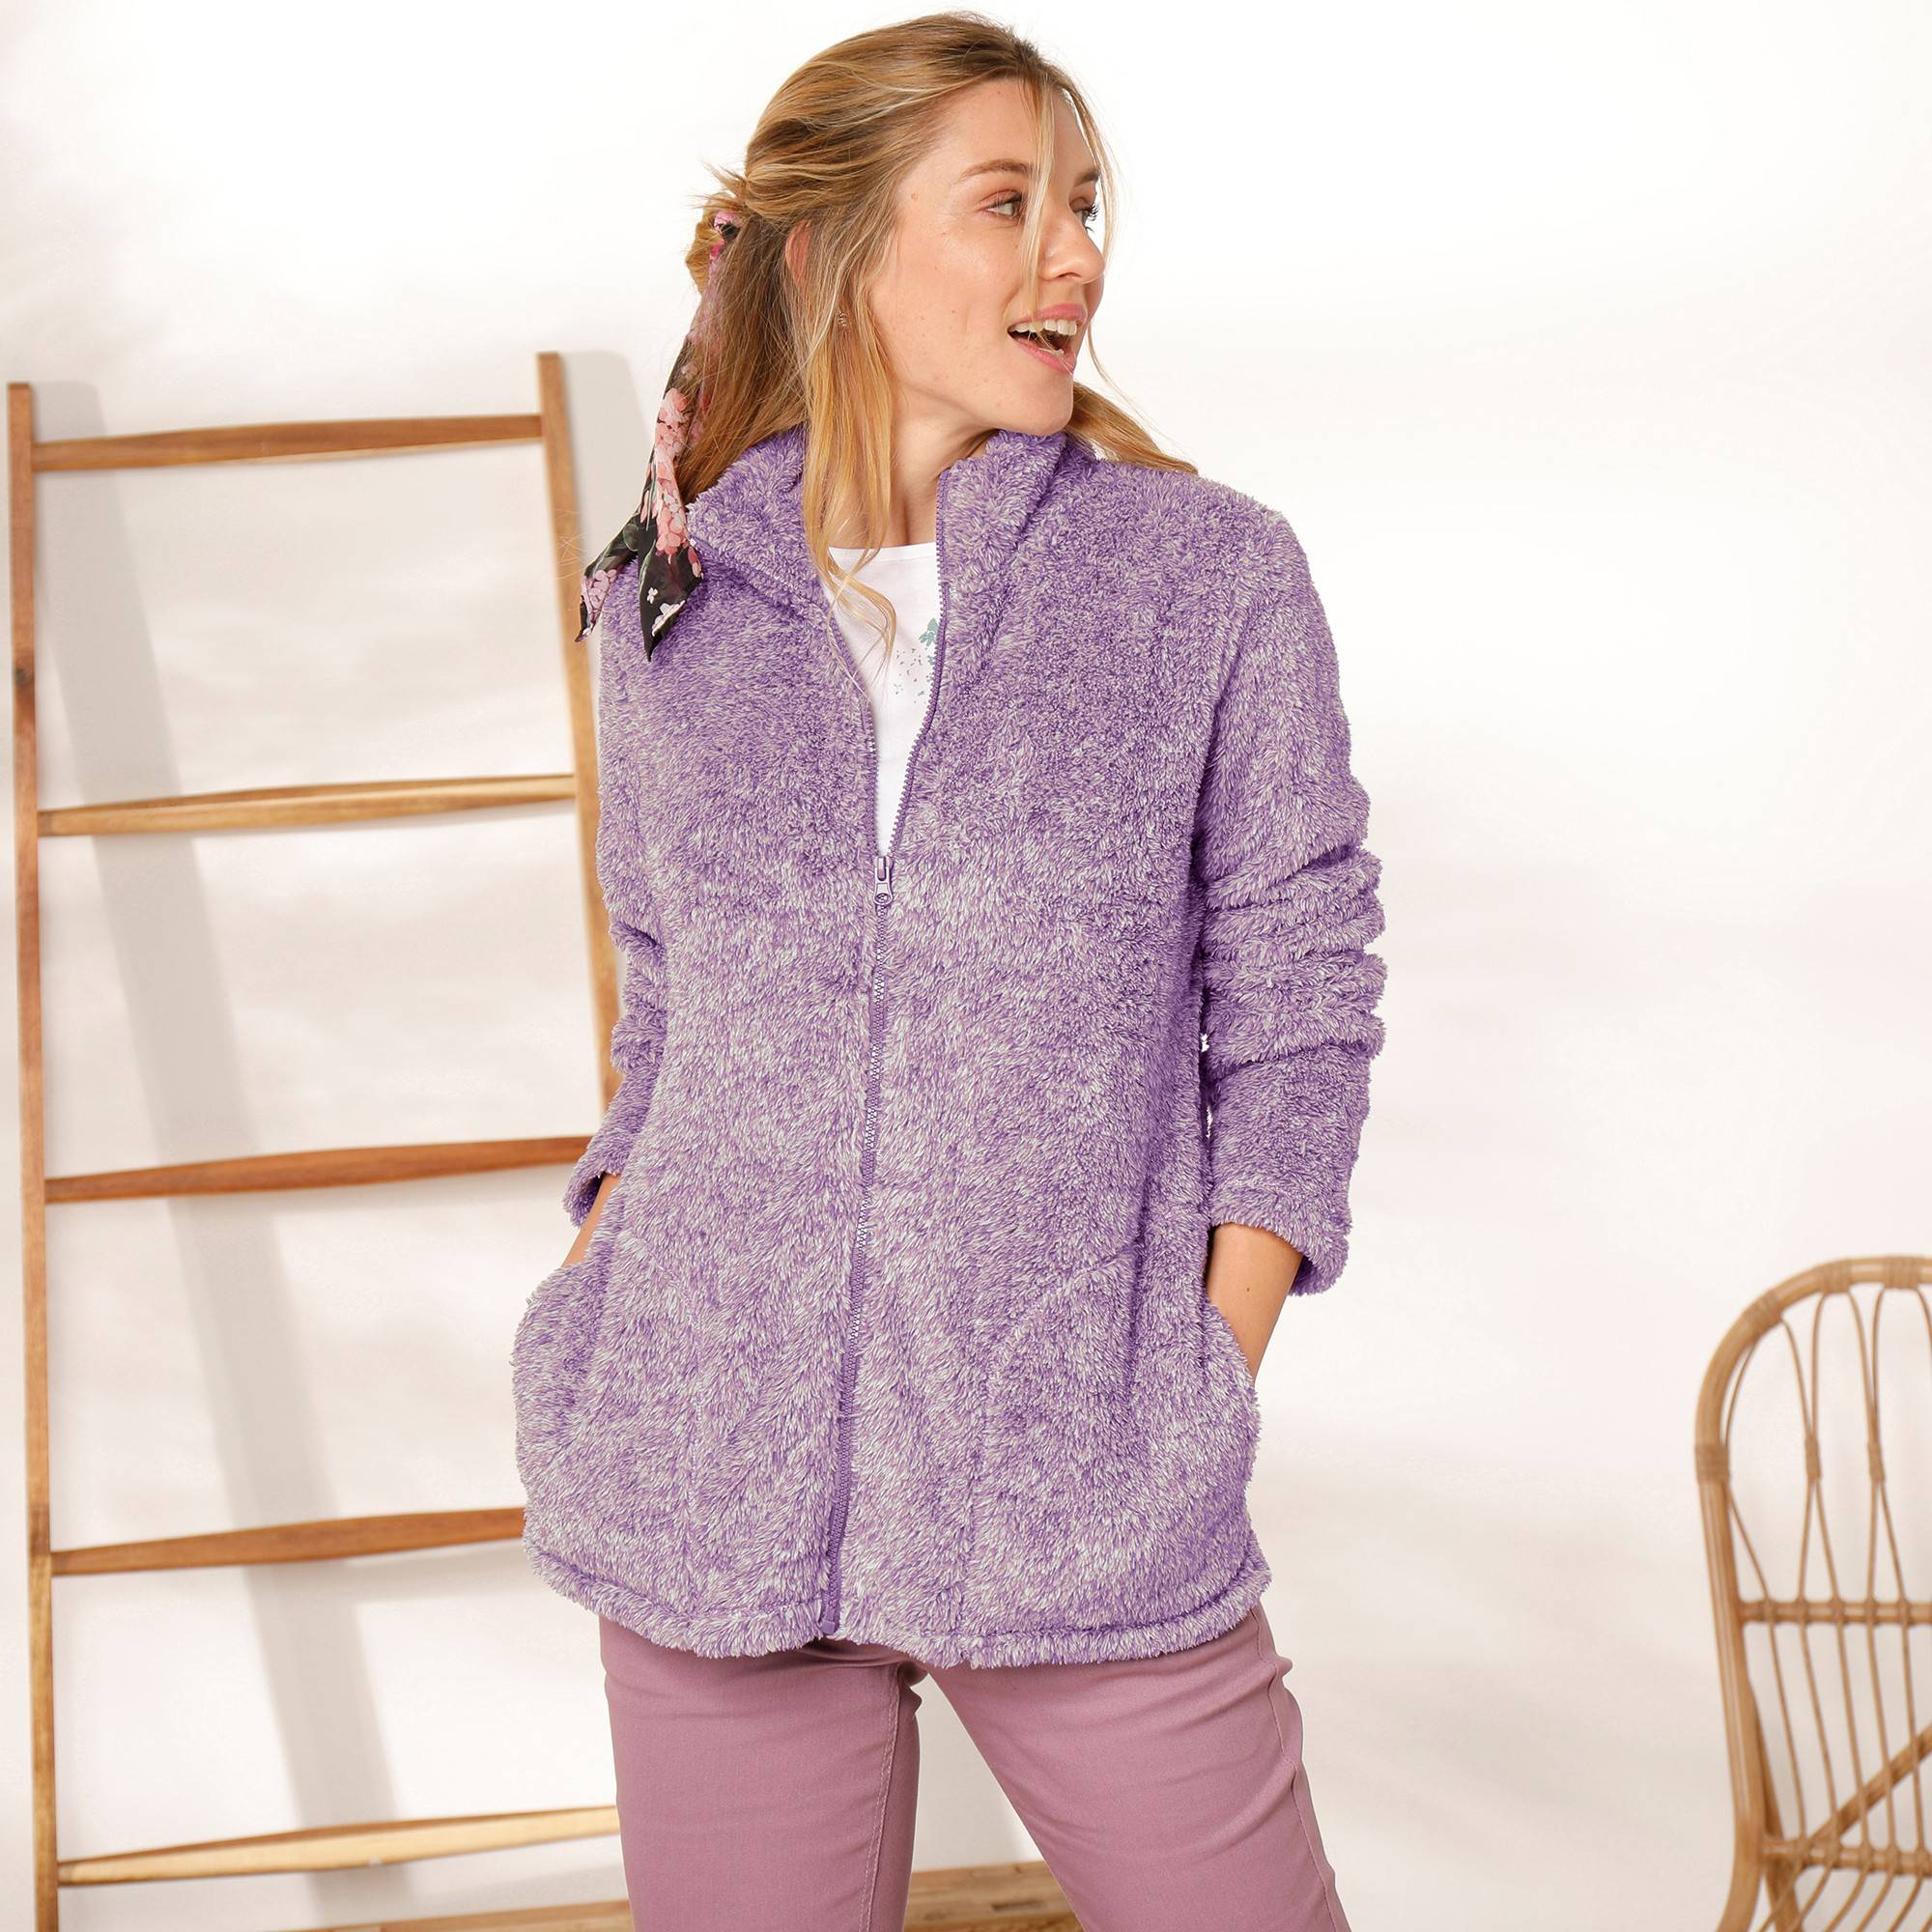 Casual Collection Veste maille peluche - Violet - Taille : 50 - Blancheporte